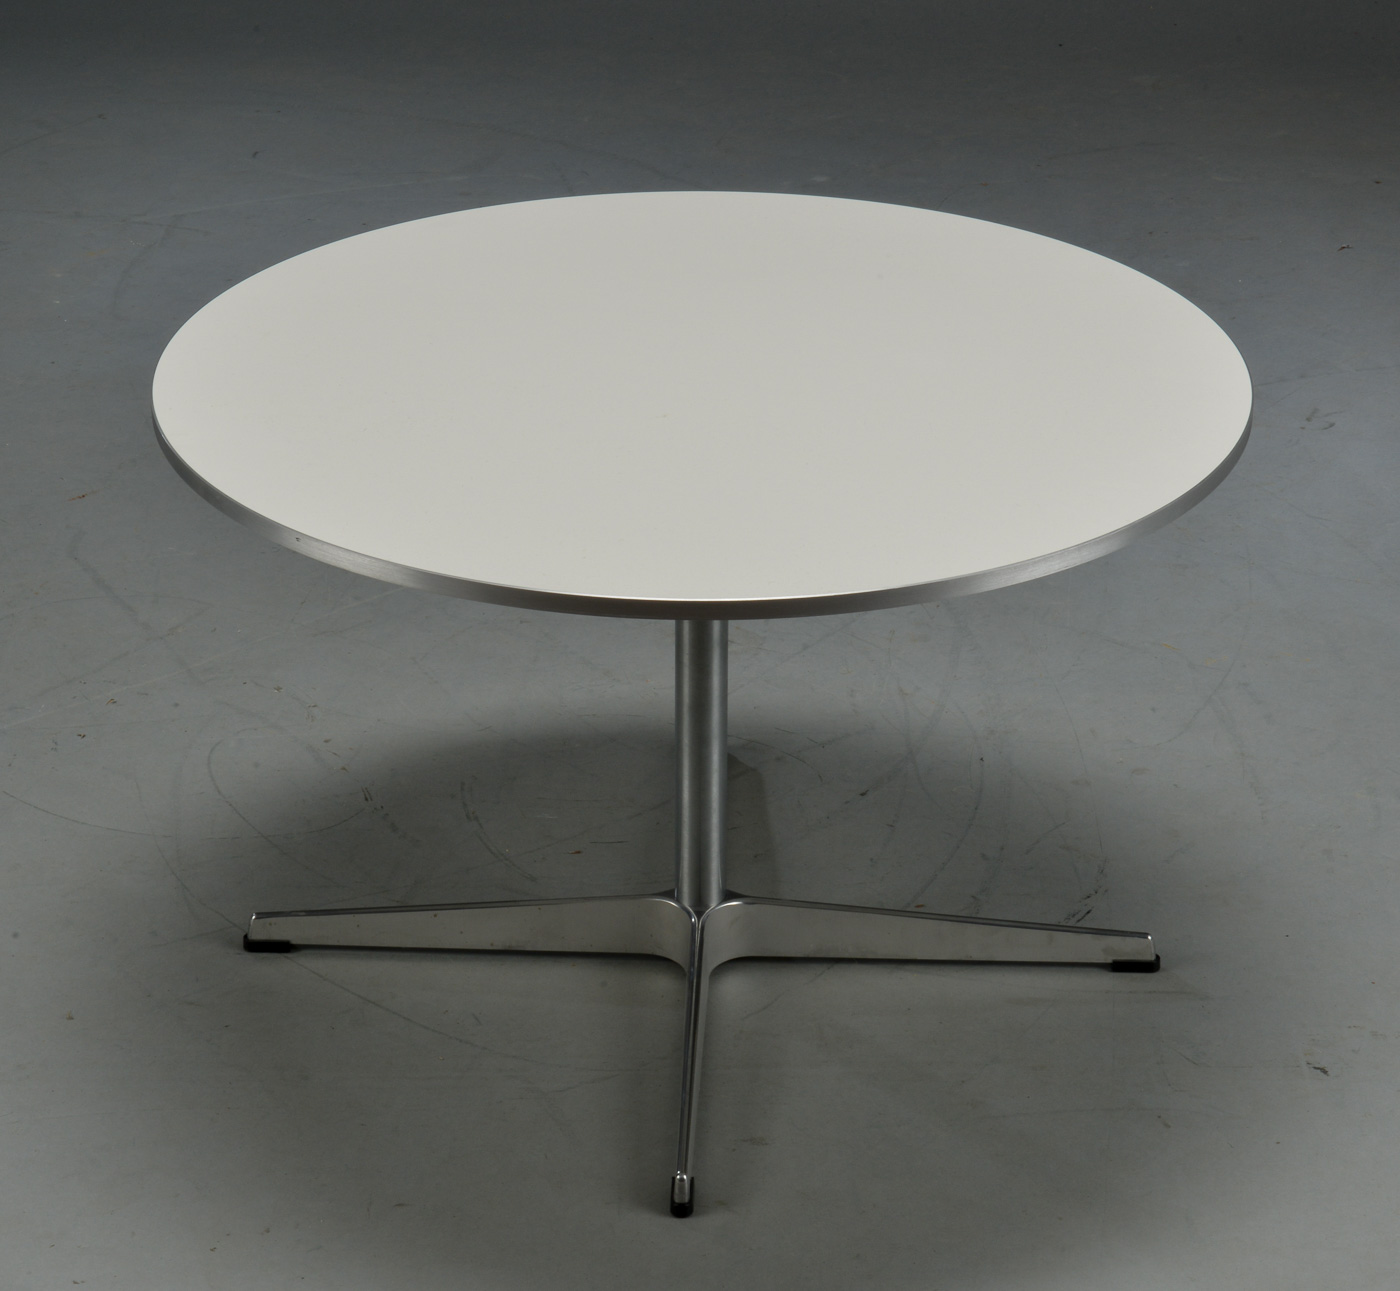 Arne Jacobsen / Piet Hein. Super circle lounge coffee table, model A222